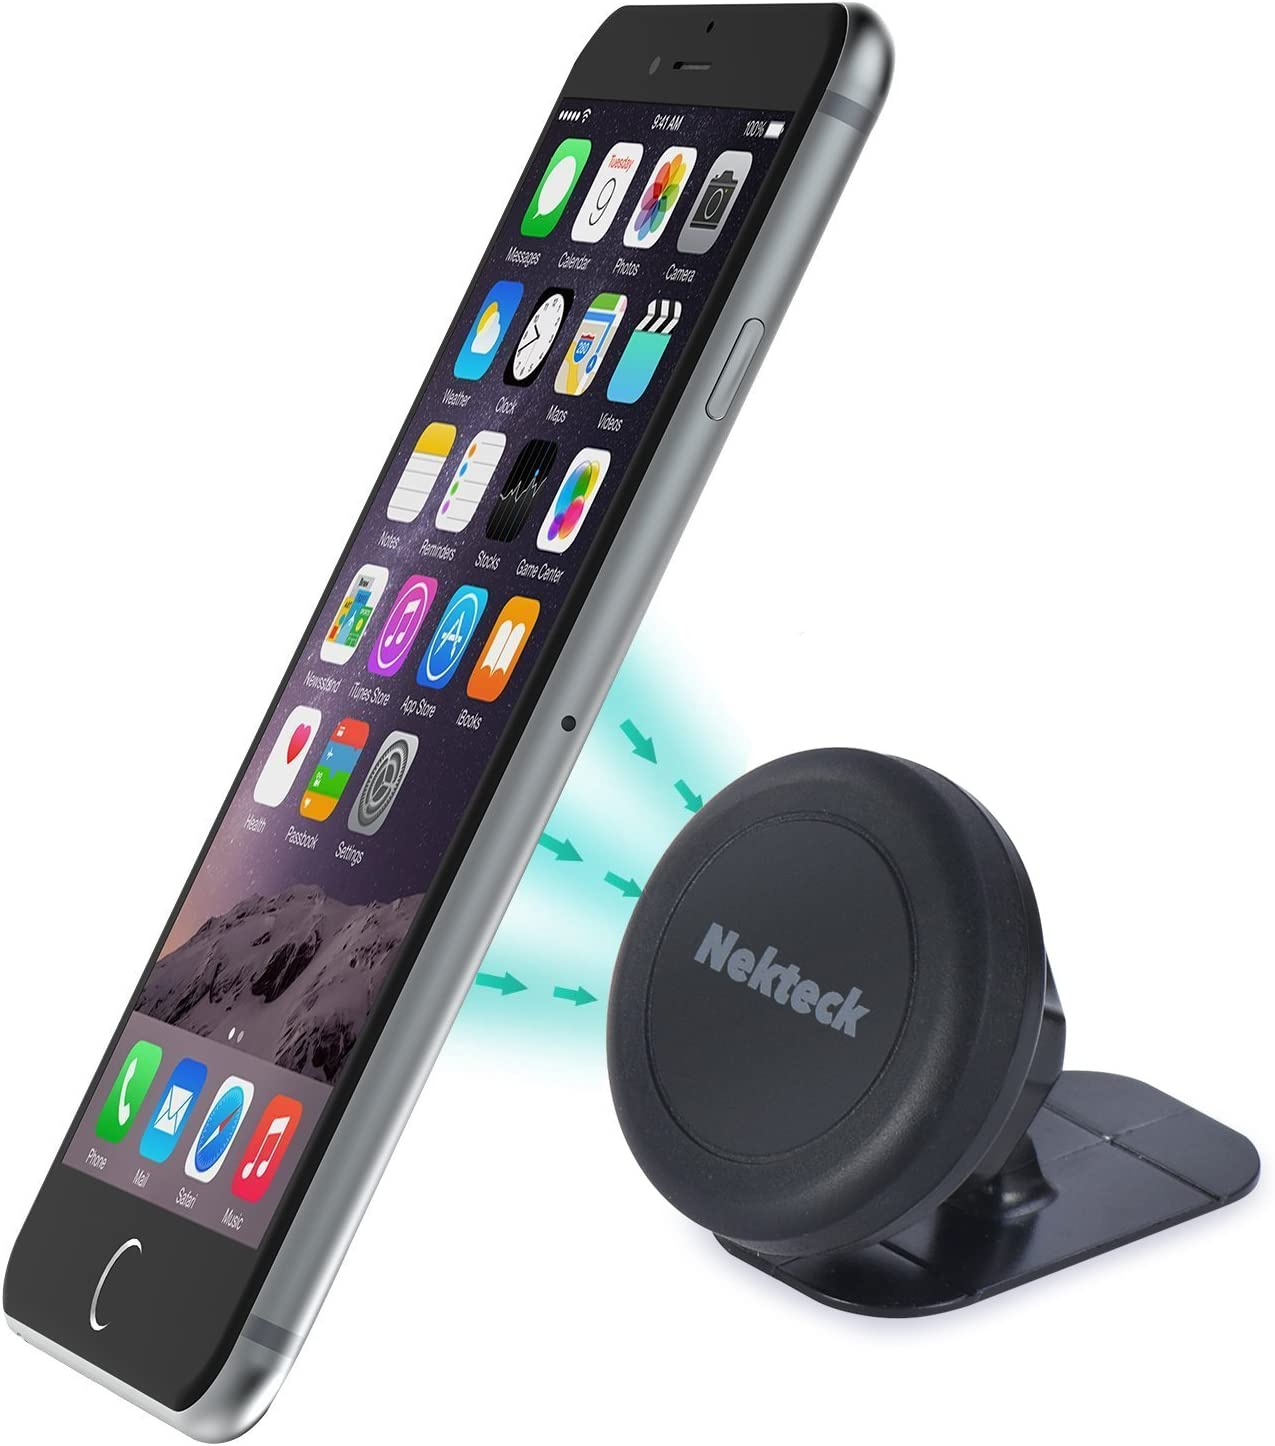 Nekteck Universal Stick on Dashboard Magnetic Car Mount Holder for iPhone X//8//7 6S// 6 6 Plus LG G7 G6 SE Pixel 3//2 XL Nexus 6P 5X More Galaxy S9//S8 S6//S7 Note 9 8 5 Car Mount